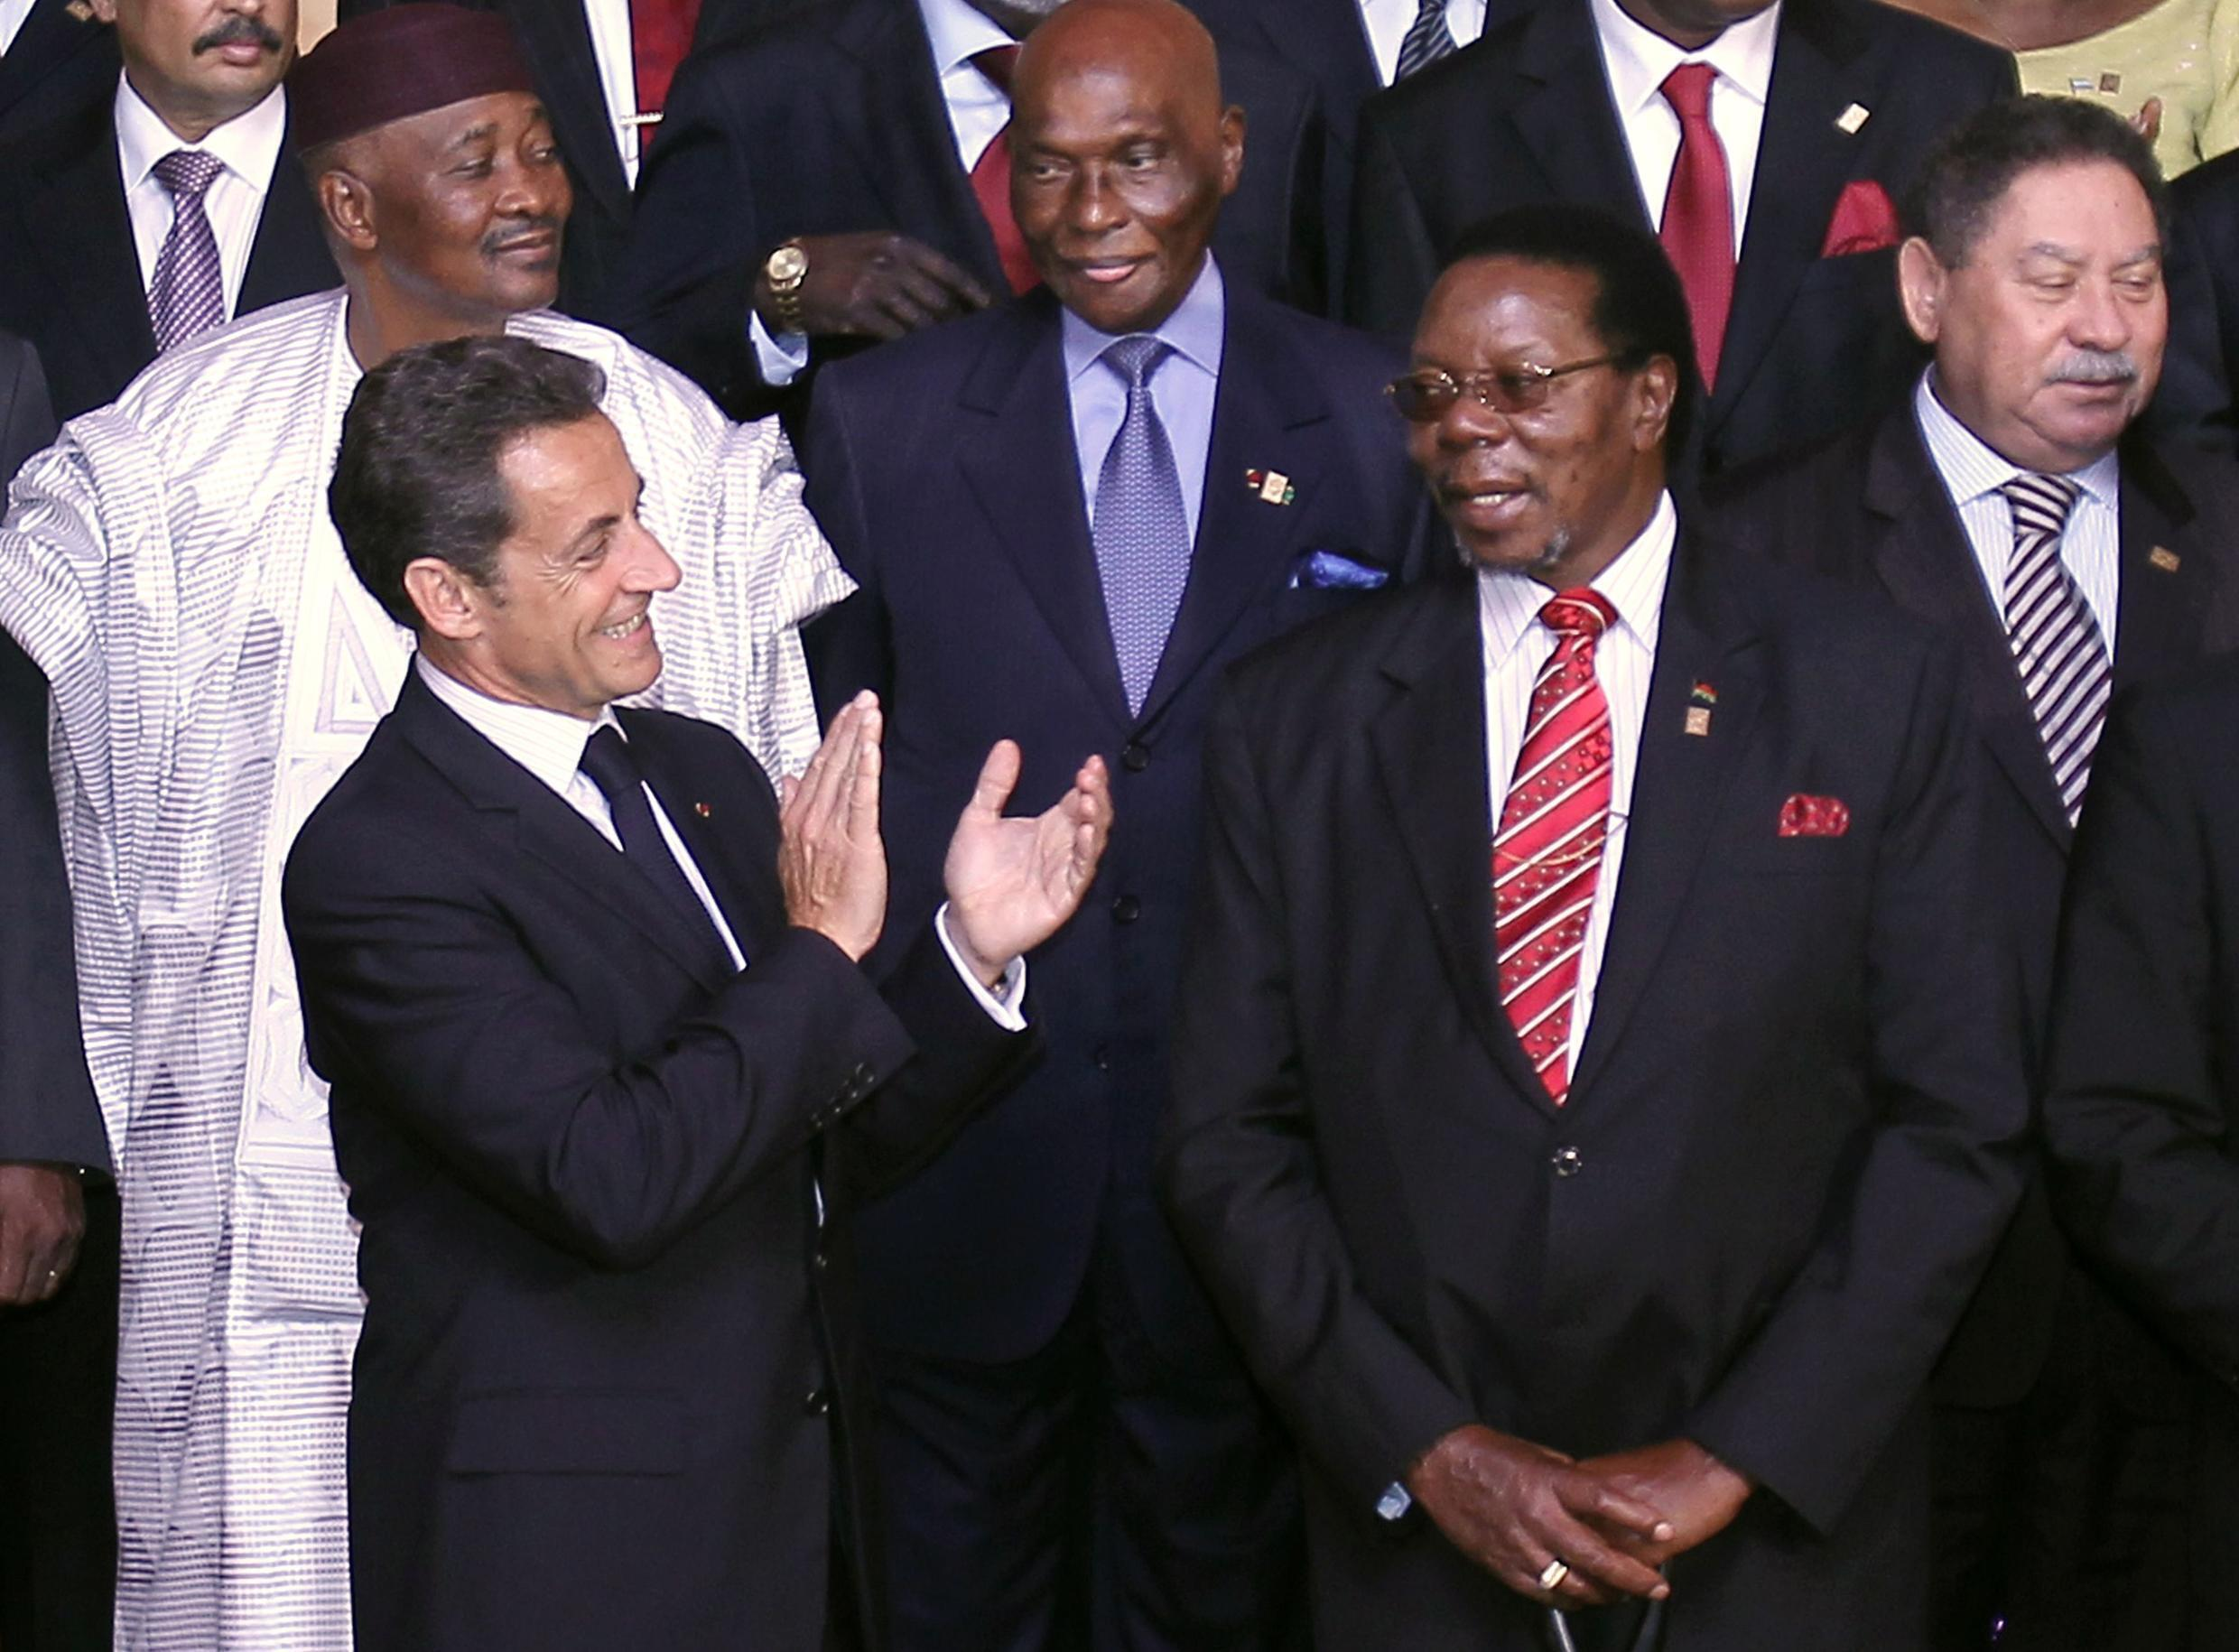 French President Nicolas Sarkozy posing with African leaders in Nice, 31 May